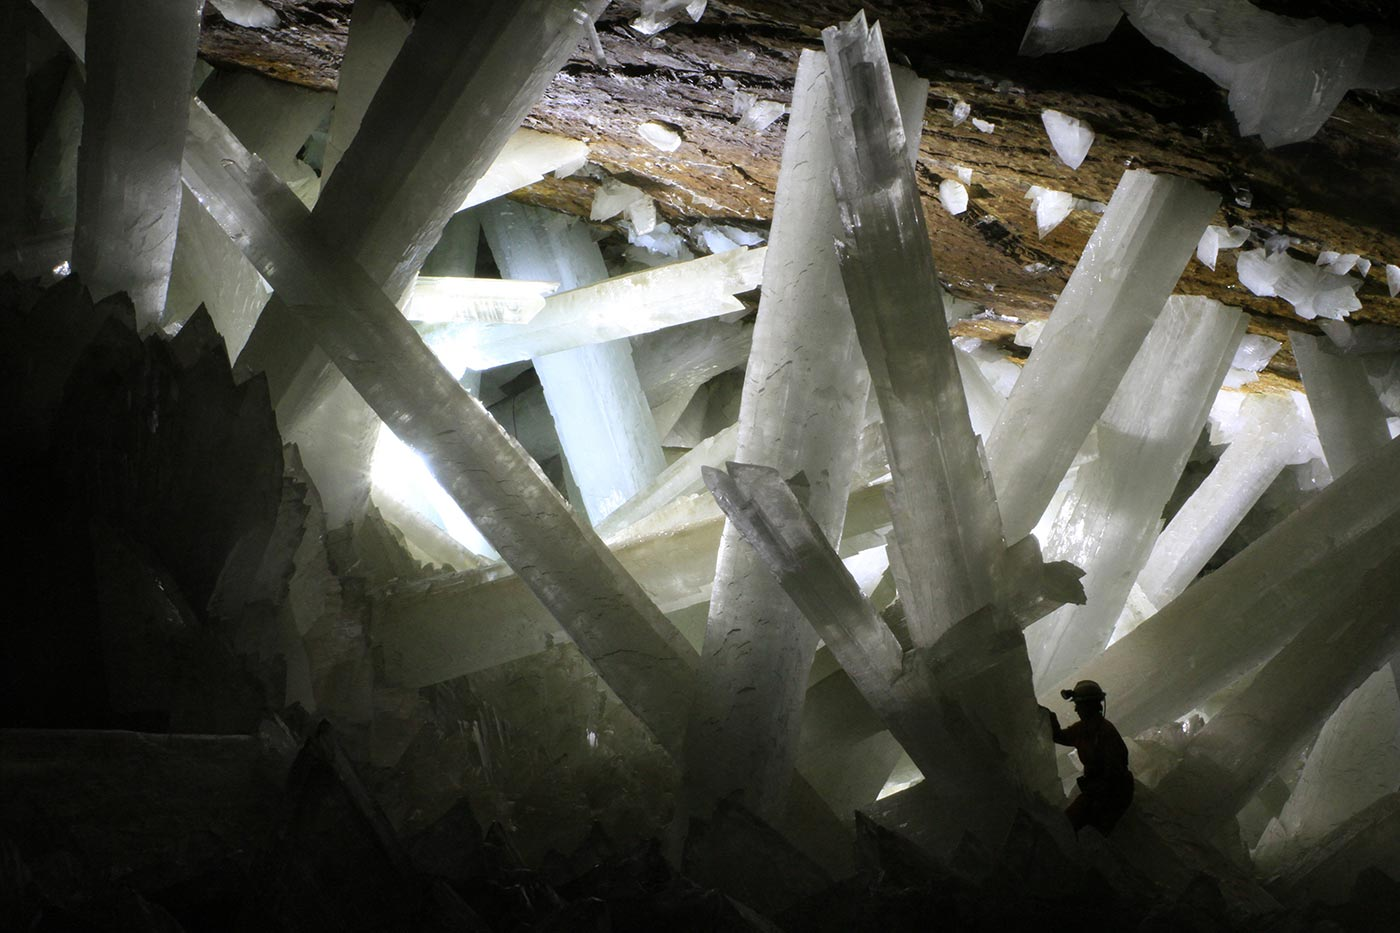 Gypsum crystals of the Naica cave (note the person for scale).